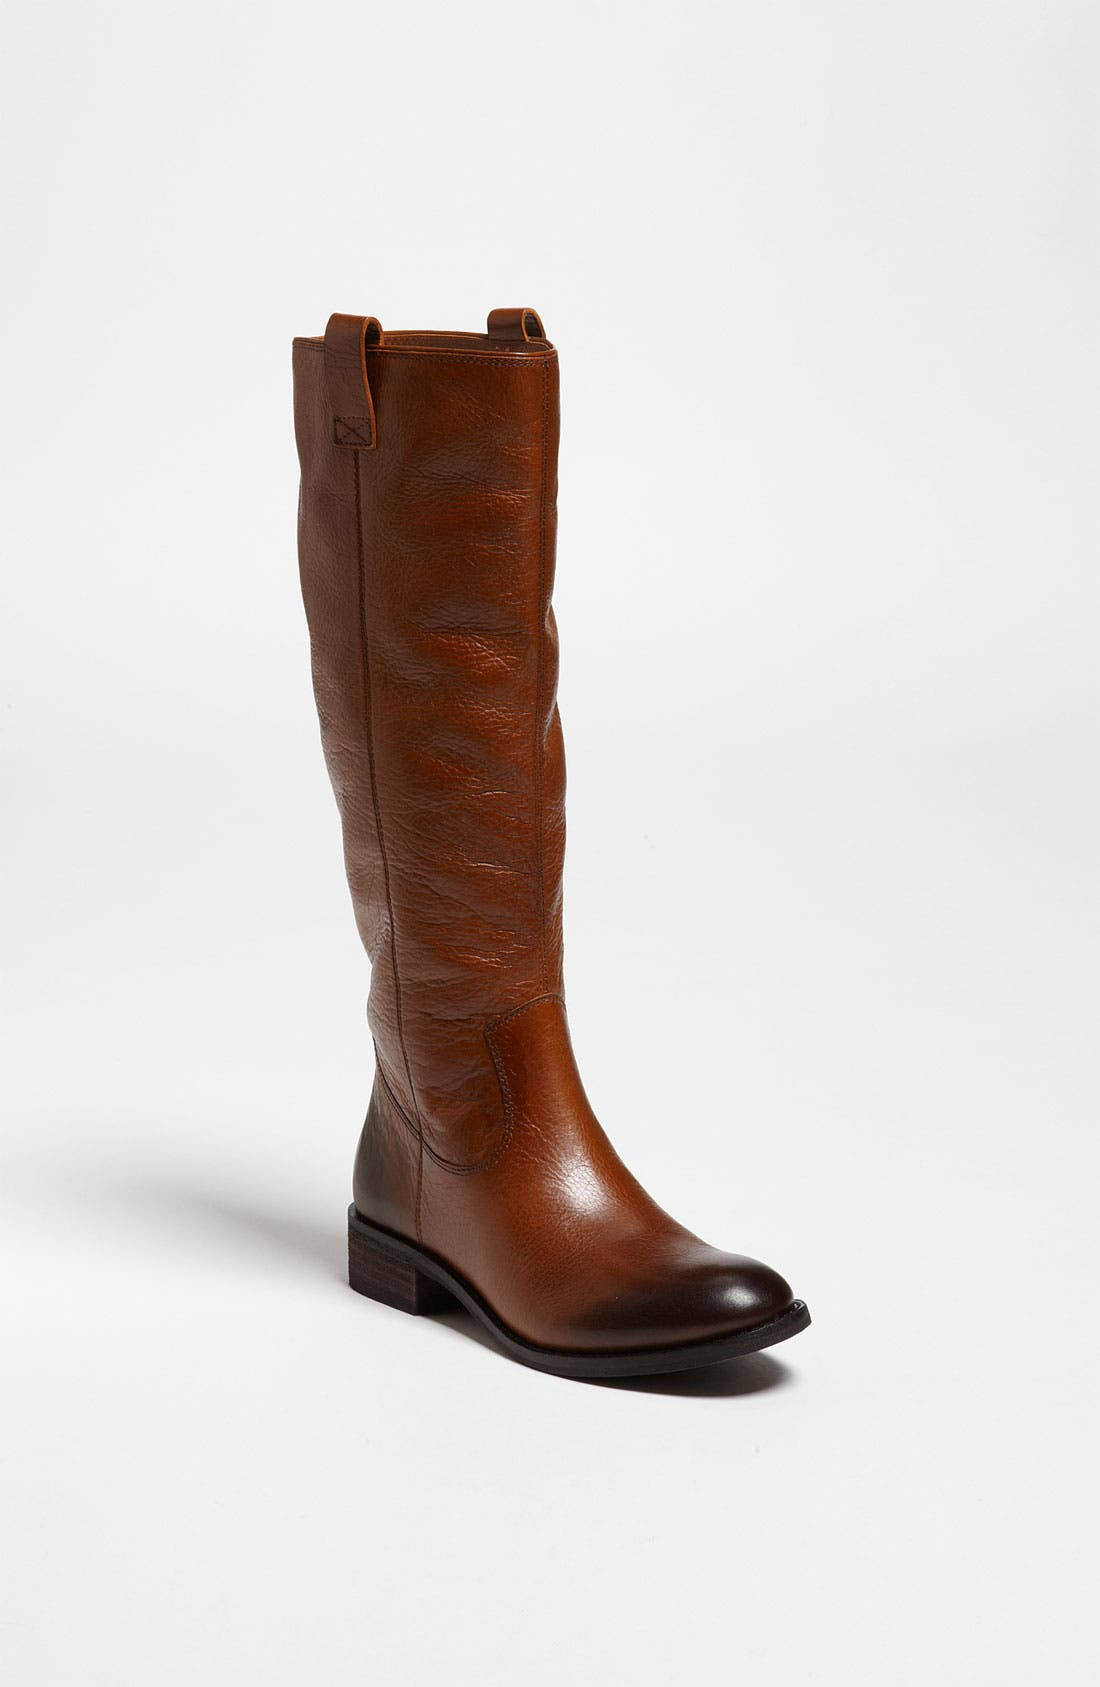 Alternate Image 1 Selected - Jessica Simpson 'Esteem' Boot (Wide Calf)